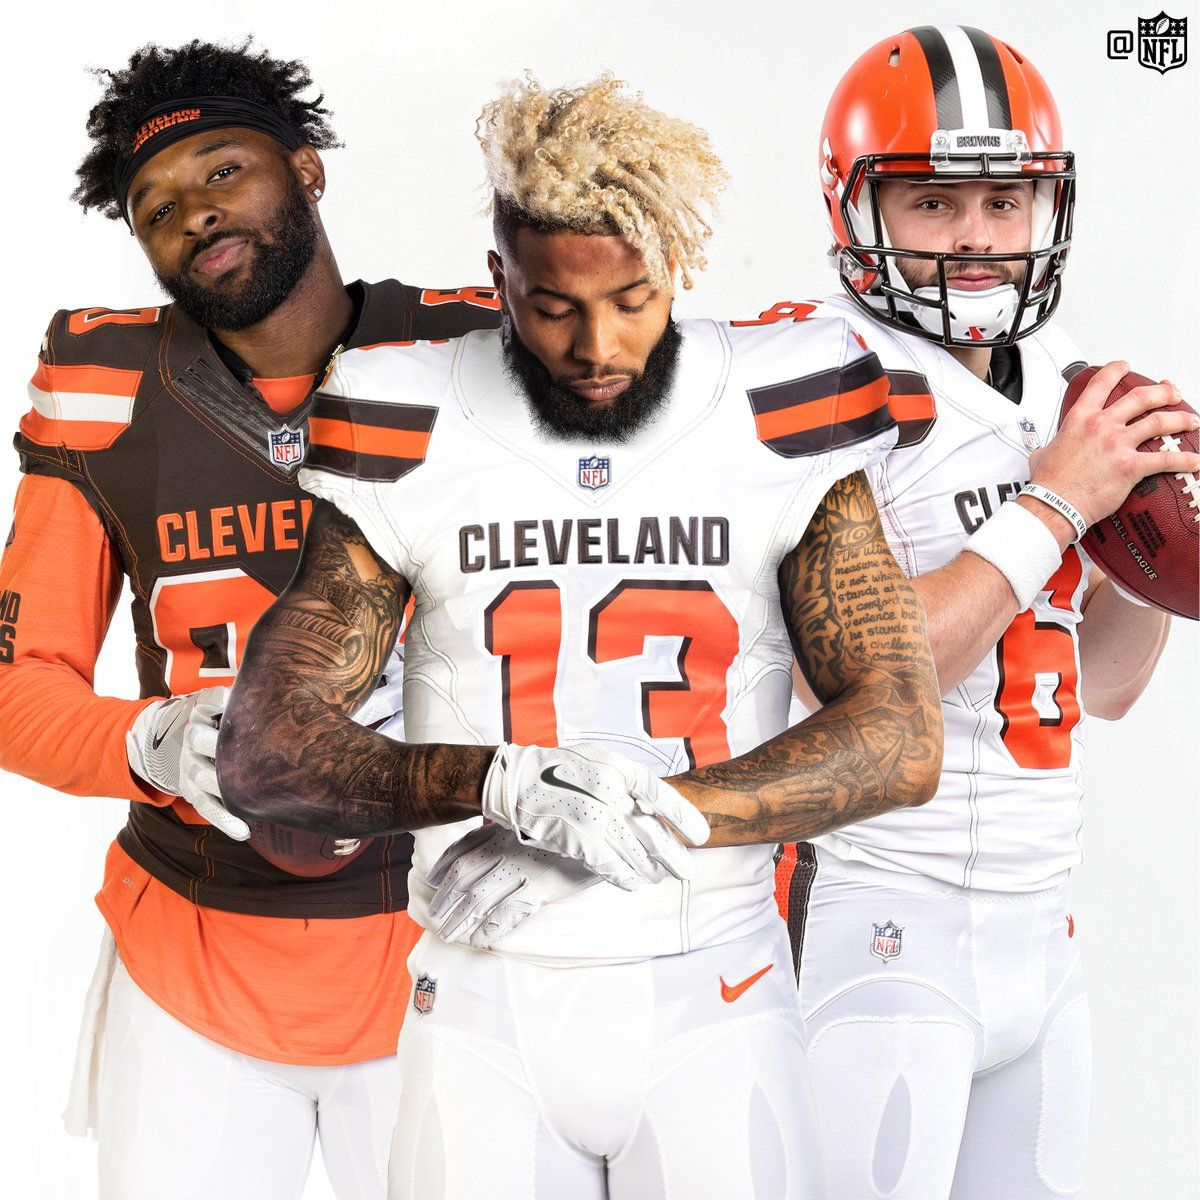 Nfl On Twitter Coming Soon In Cleveland Cleveland Browns Logo Cleveland Browns Football Browns Football